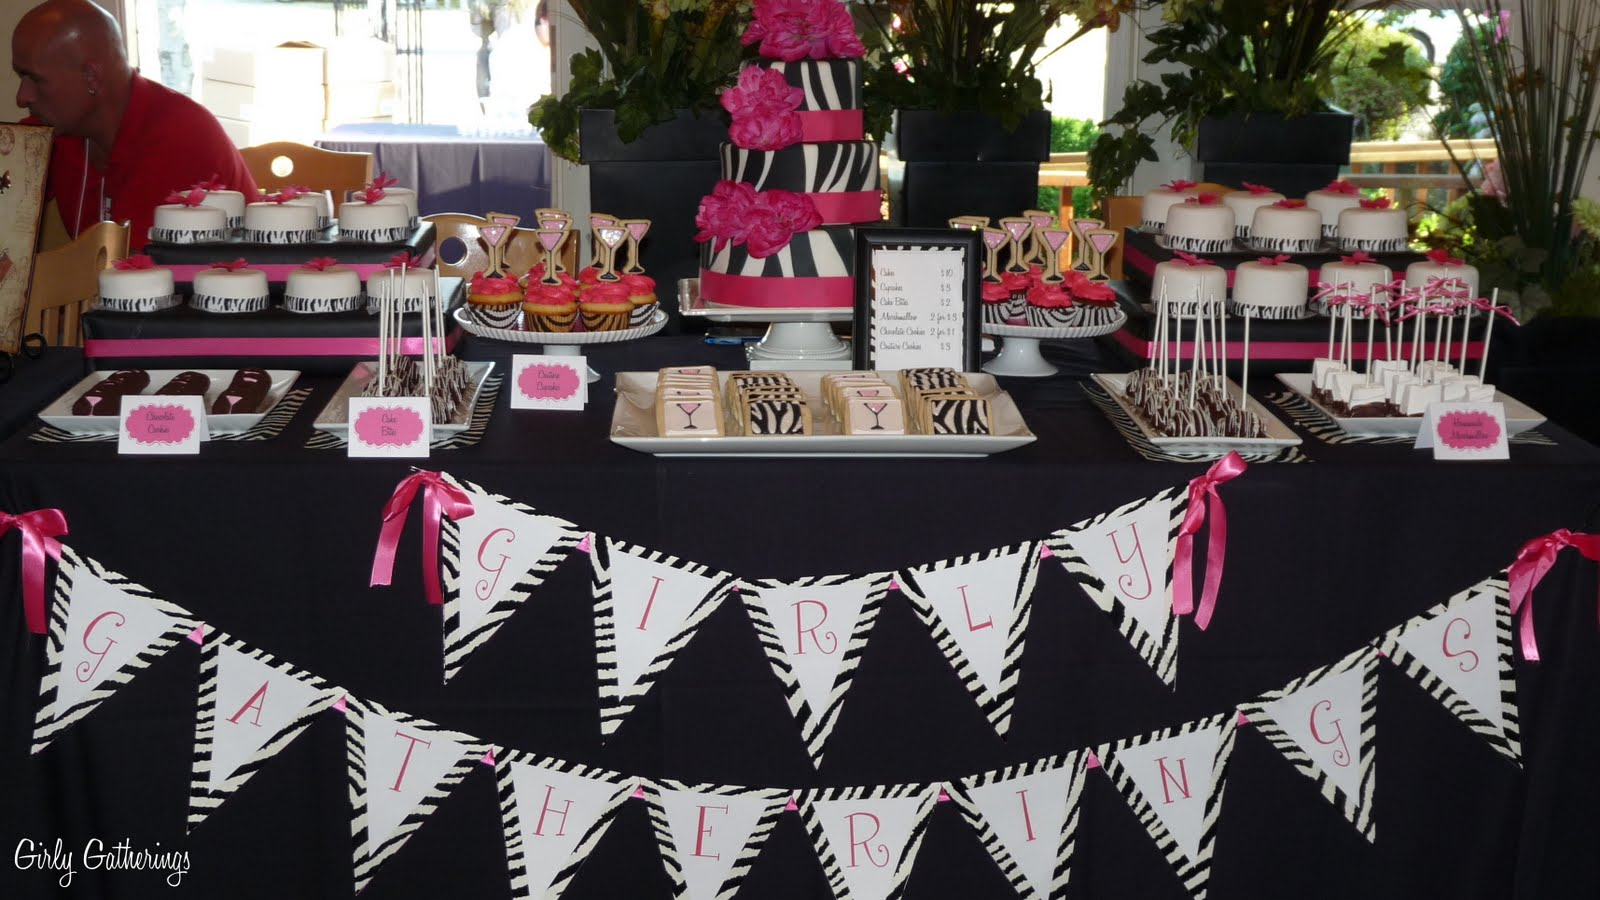 Girly Gatherings Girls Night Out Dessert Table